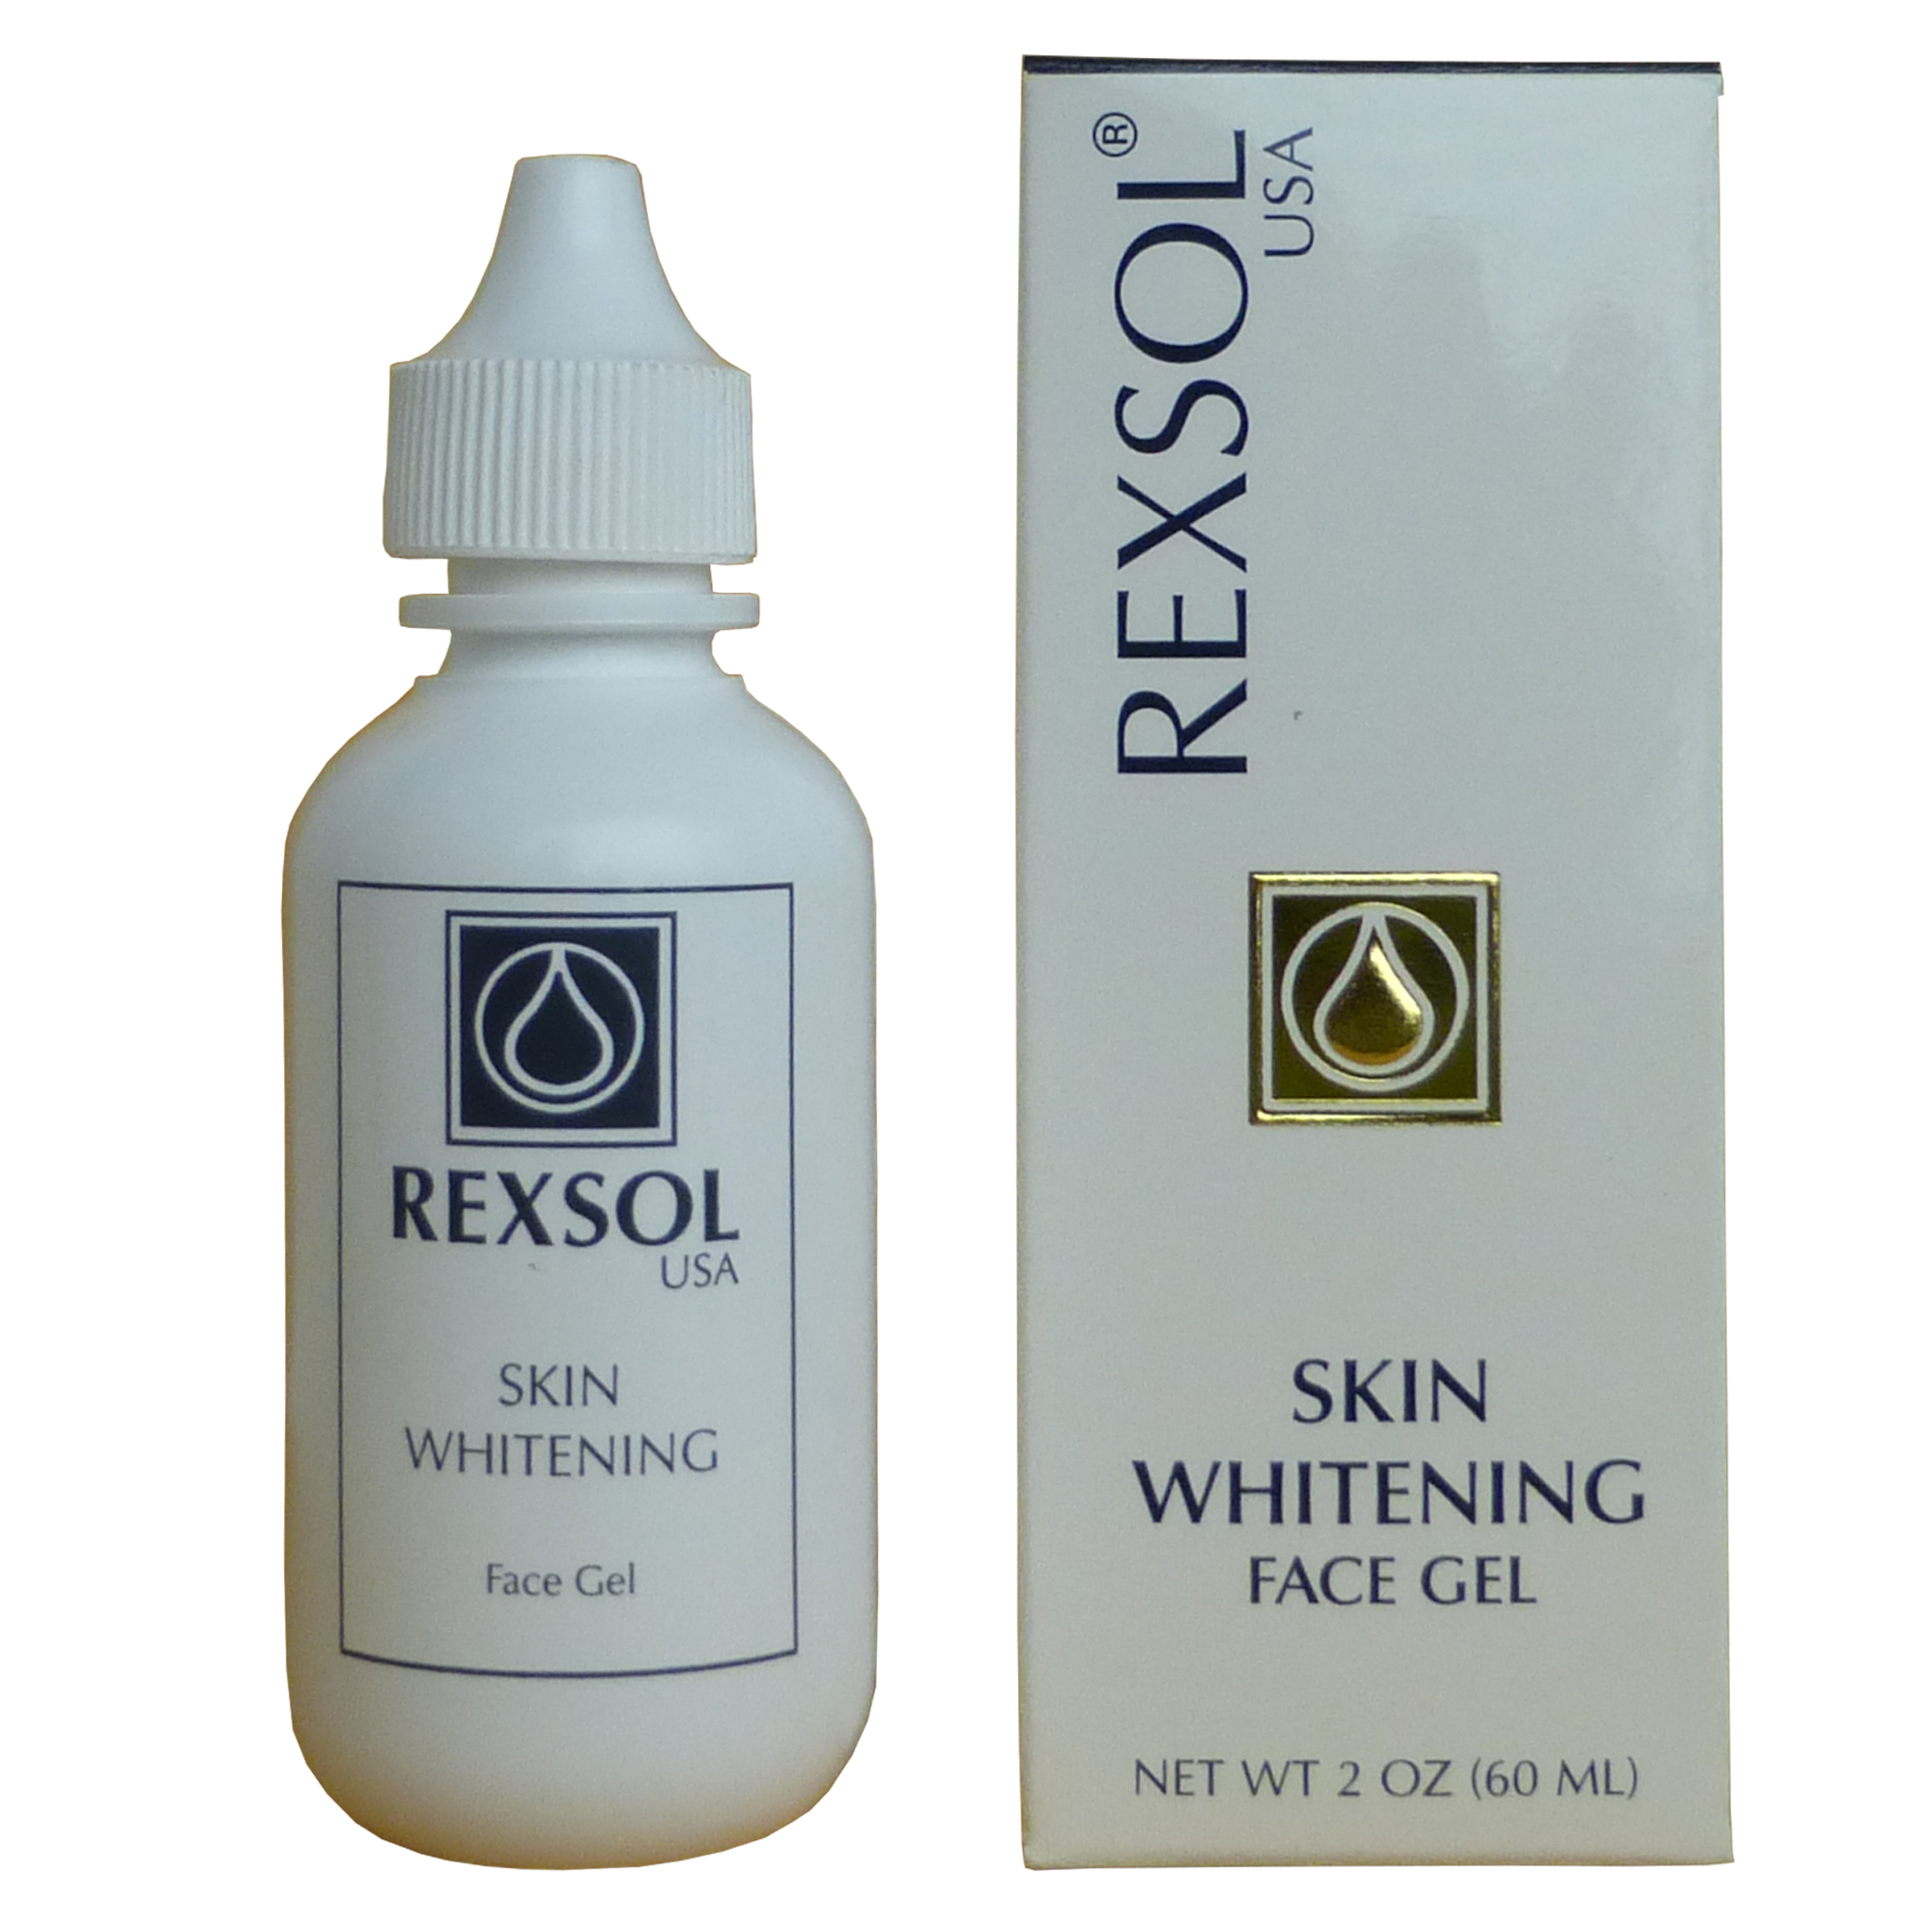 skin whitening gel - with--